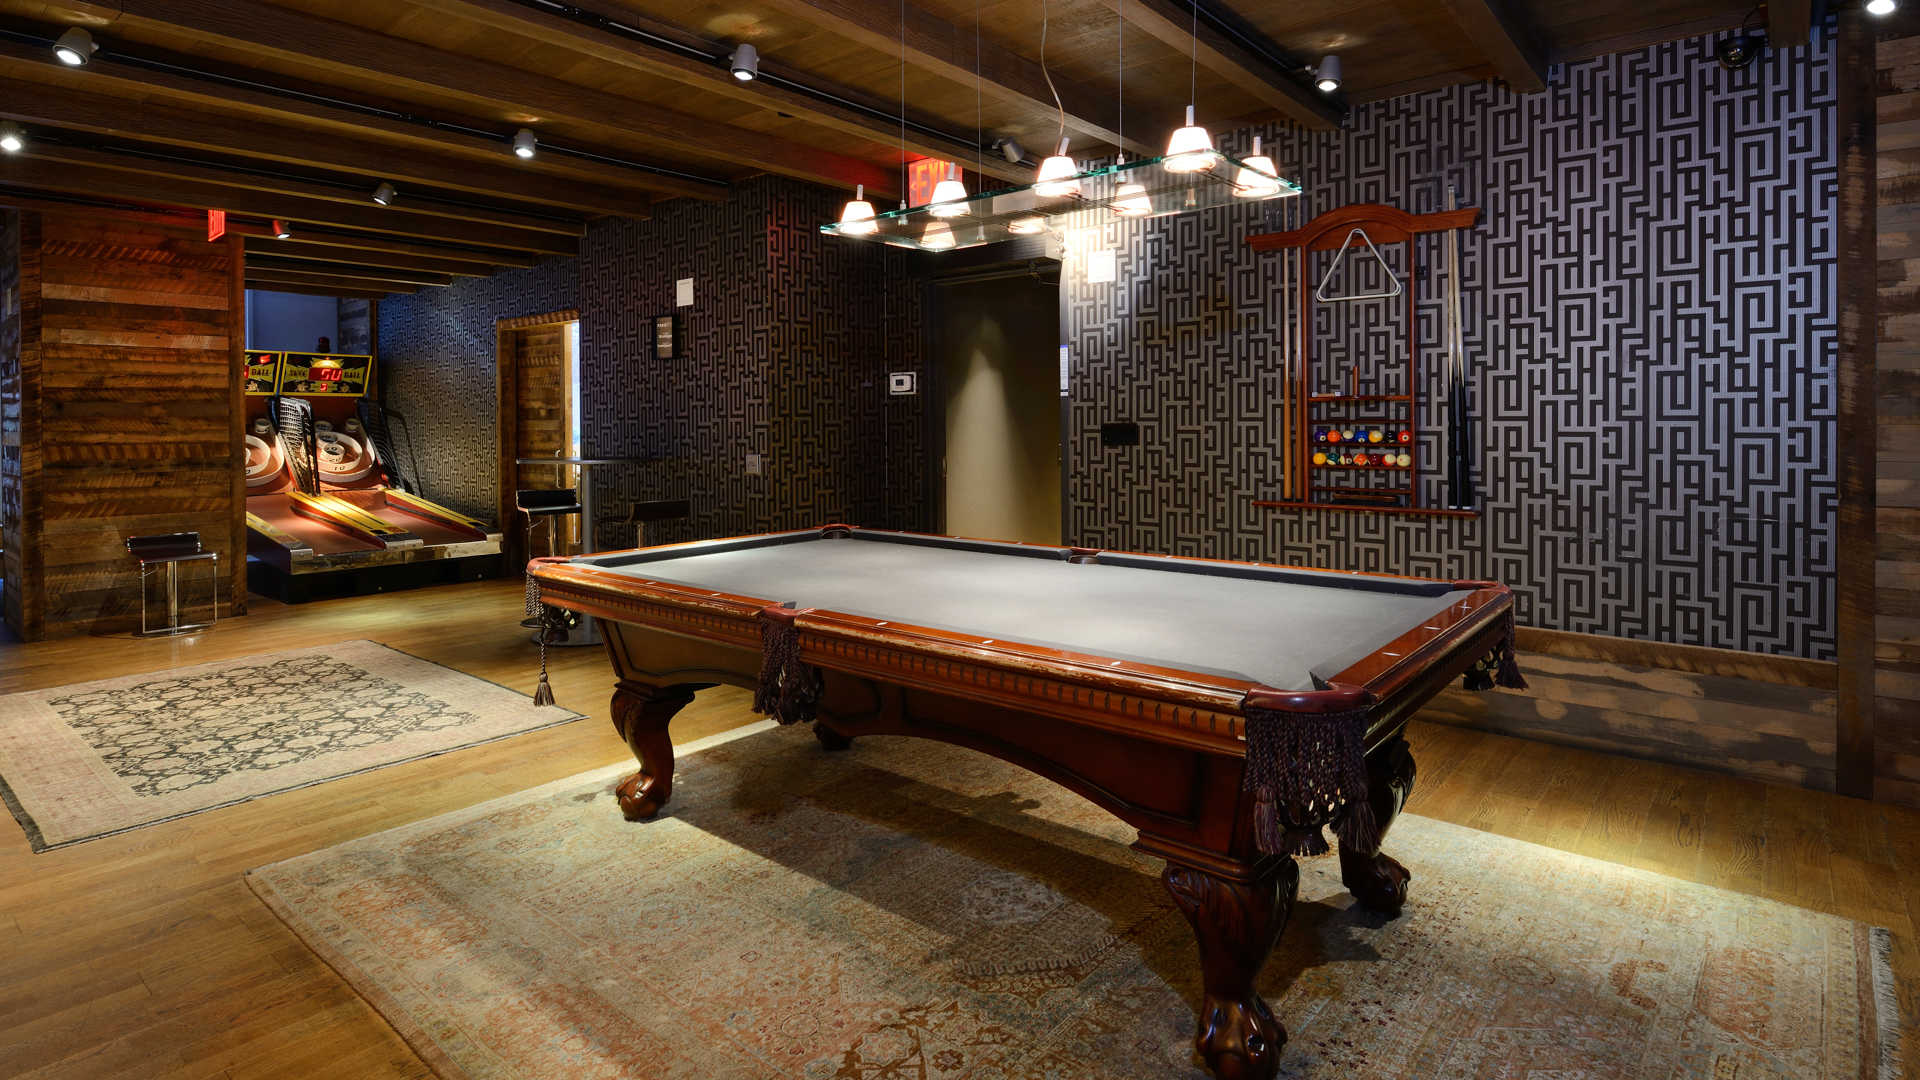 Lounge and Game Room with Billiards